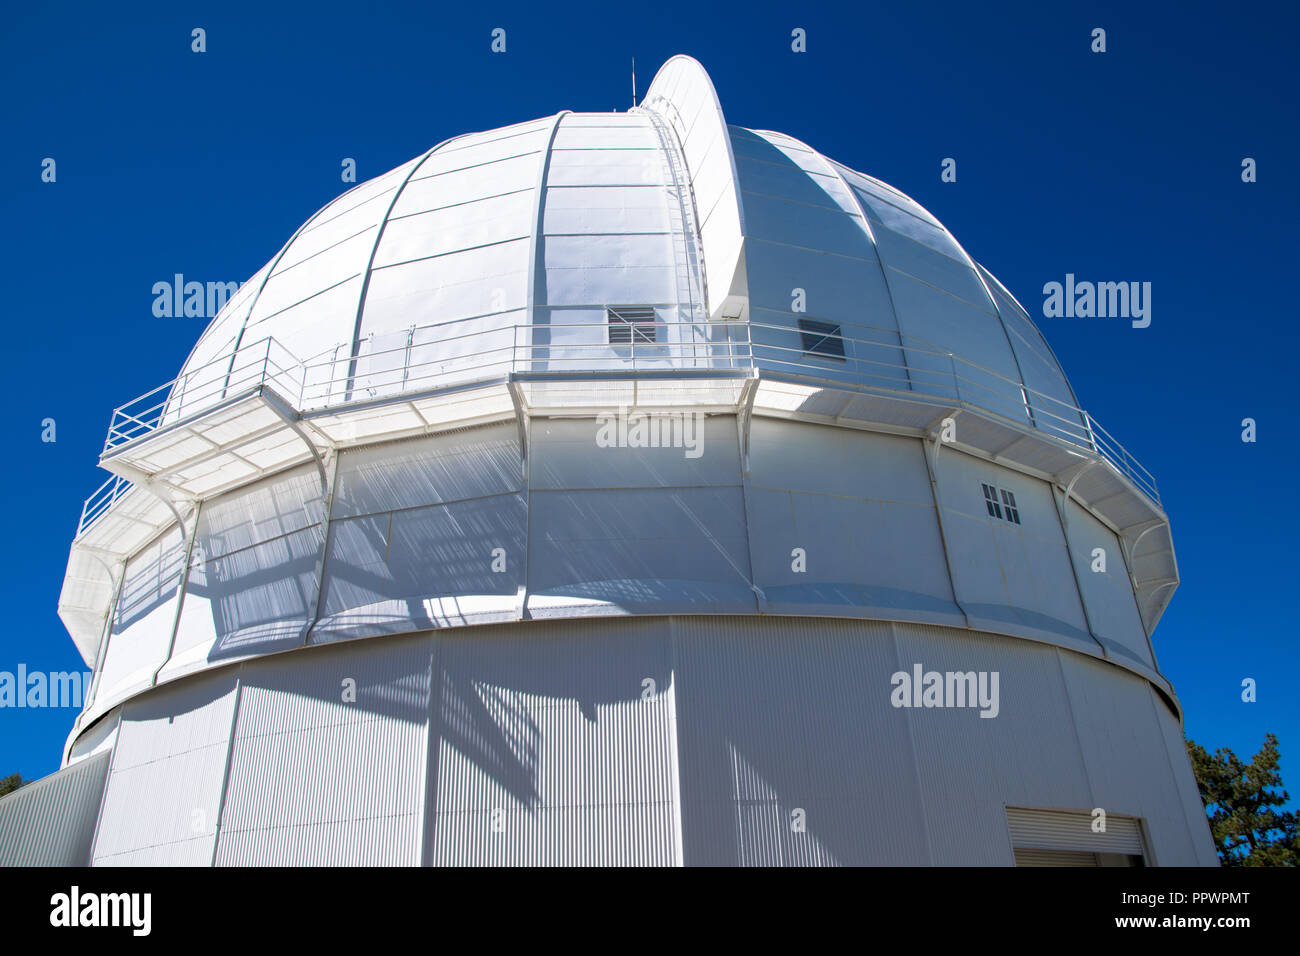 The 60 inch reflective telescope at the Mount Wilson